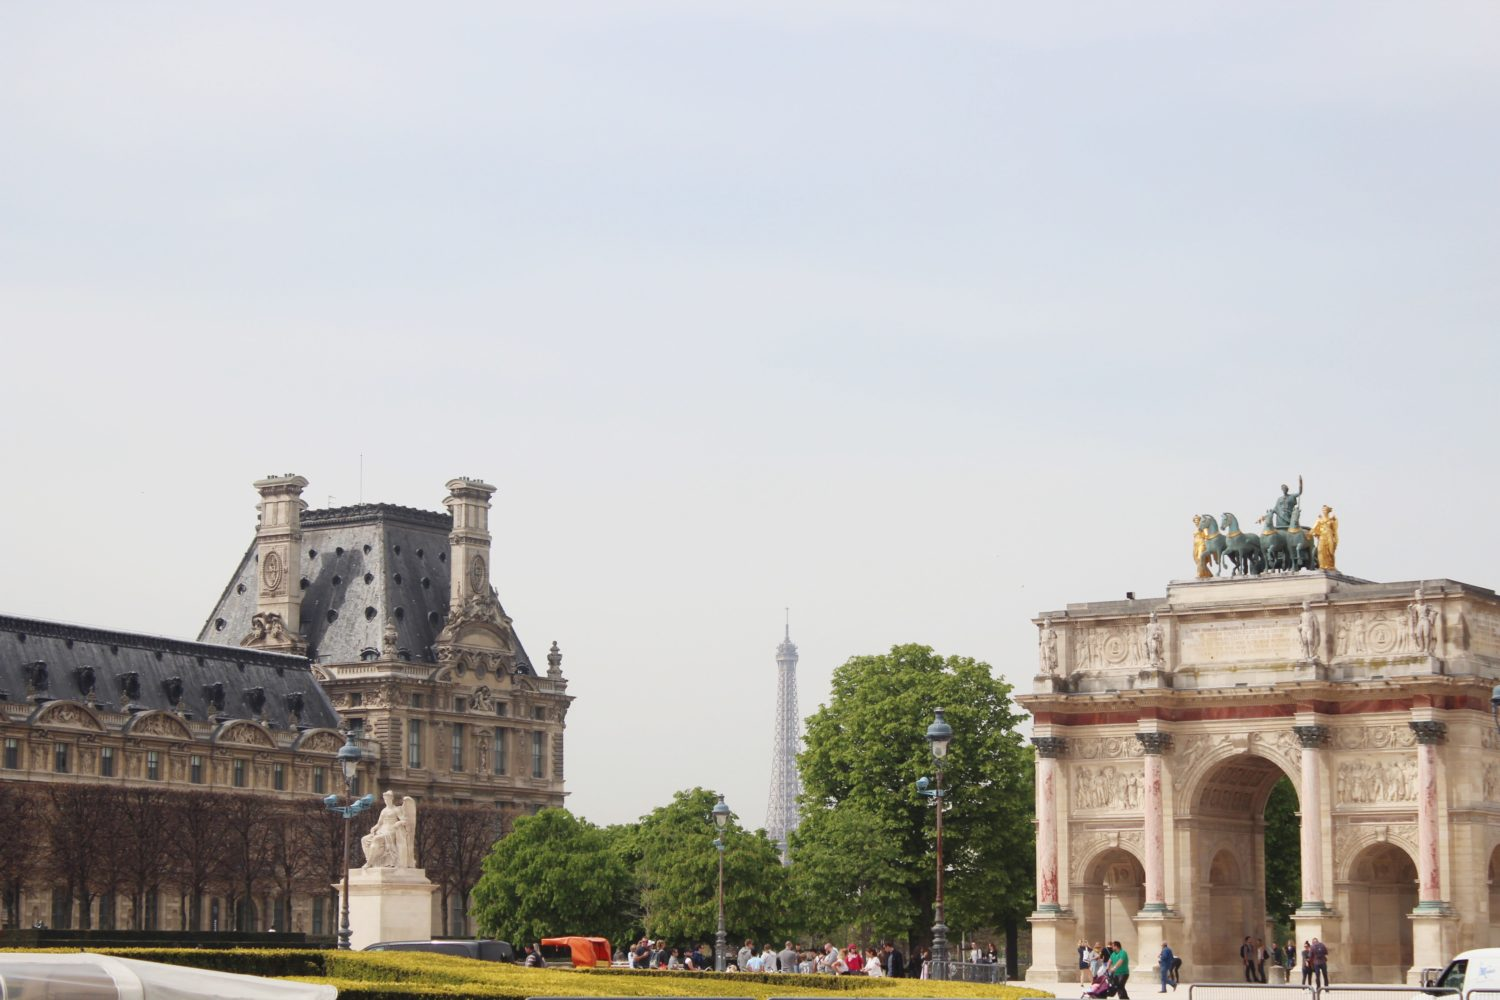 The Eiffel Tower from The Louvre